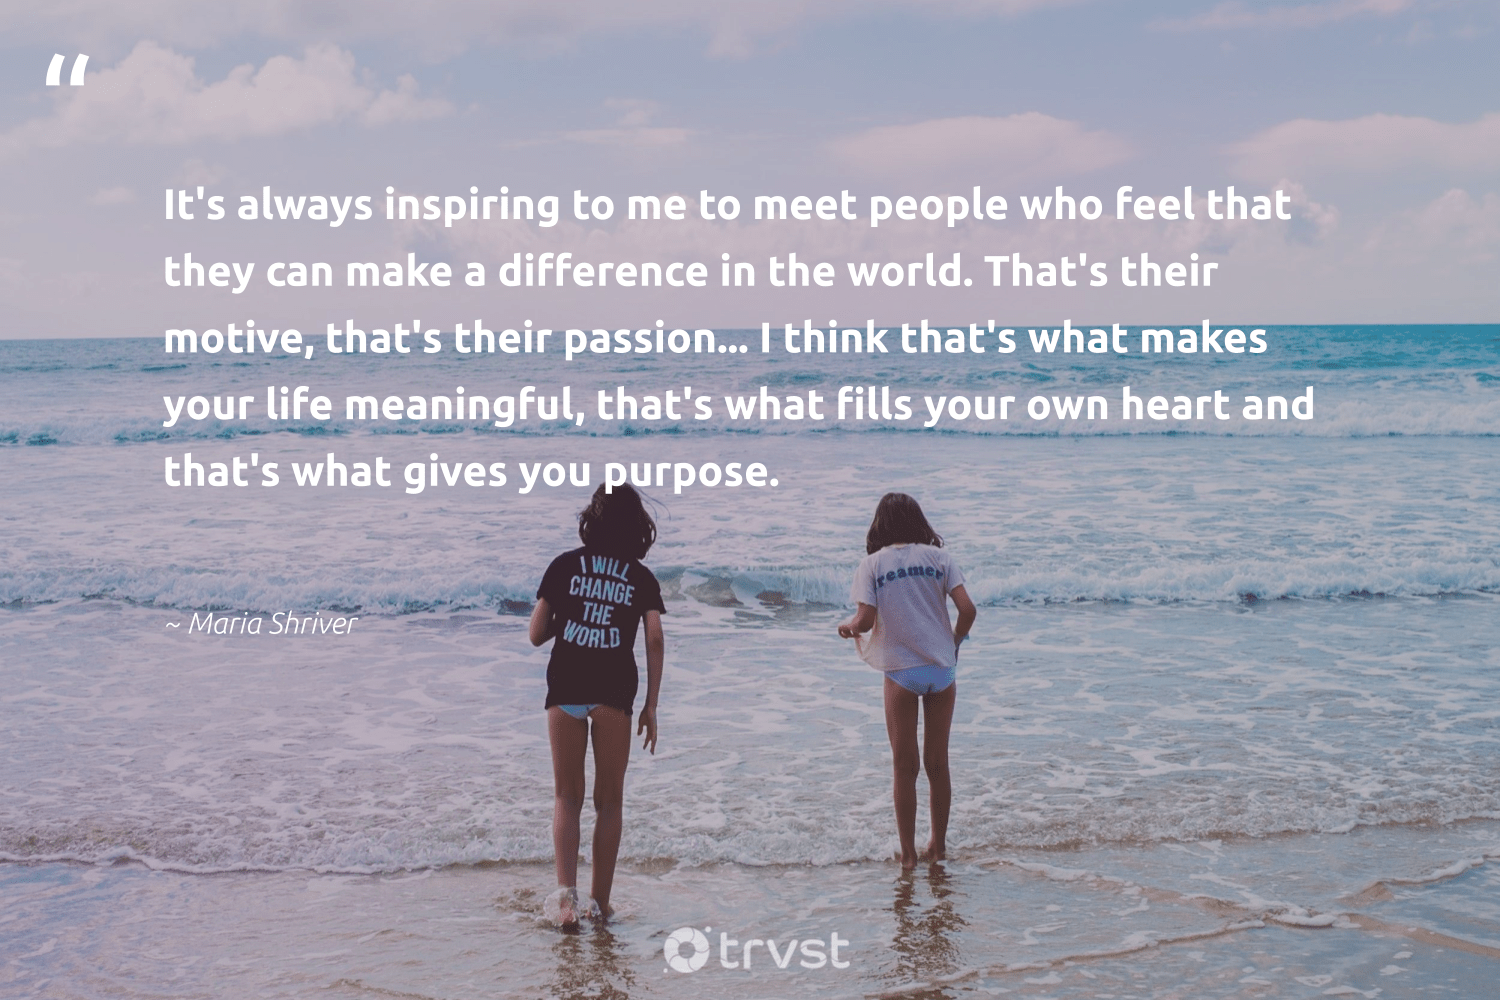 """""""It's always inspiring to me to meet people who feel that they can make a difference in the world. That's their motive, that's their passion... I think that's what makes your life meaningful, that's what fills your own heart and that's what gives you purpose.""""  - Maria Shriver #trvst #quotes #purpose #makeadifference #passion #findpurpose #changemakers #togetherwecan #gogreen #findingpupose #nevergiveup #health"""